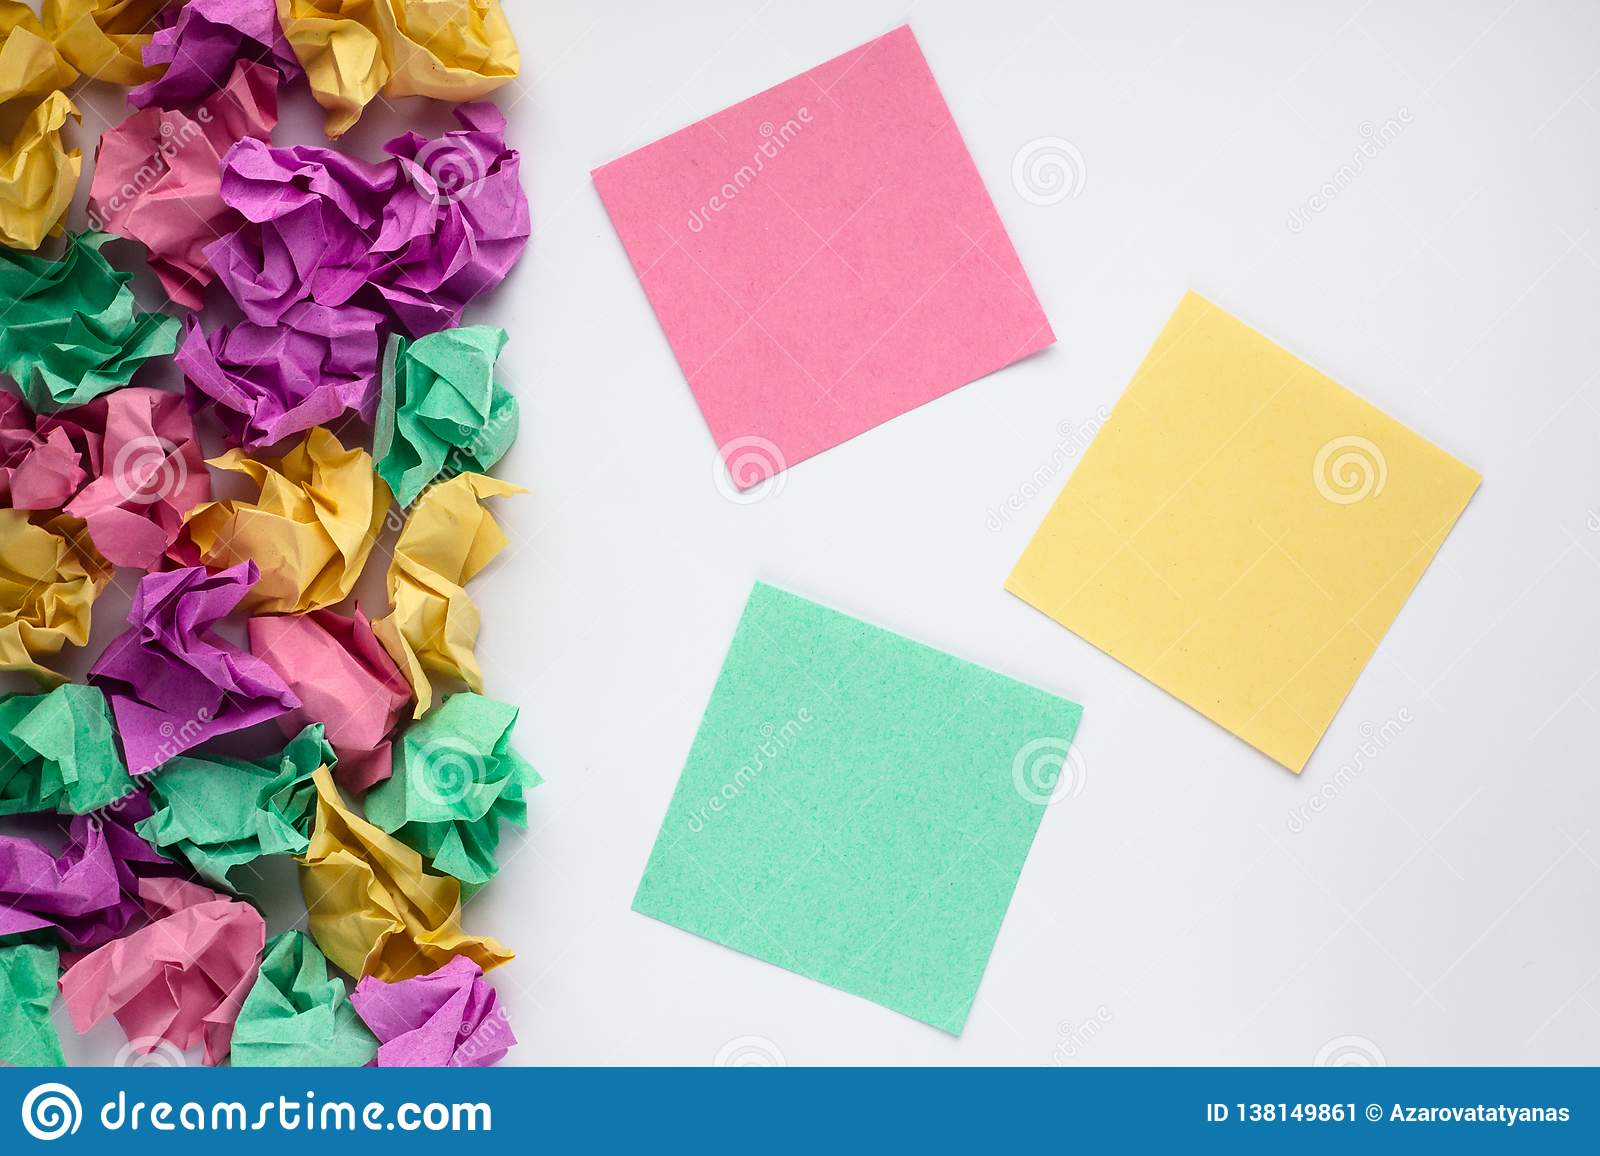 Colorful multicolored sticky notes on white background. Sticker note. Education concept. Copy space.